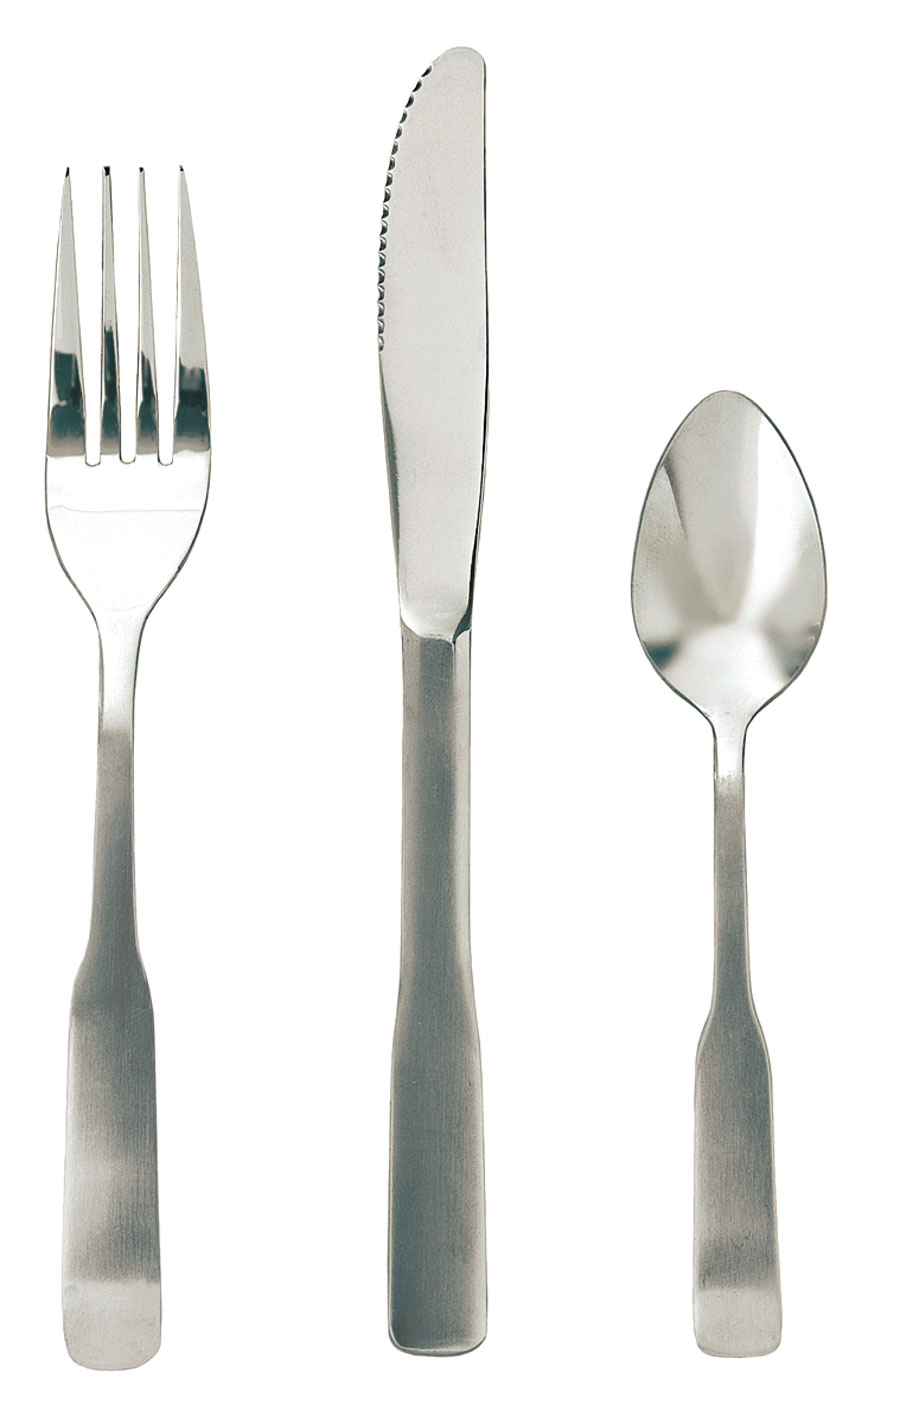 Update International WA-305 Washington Dinner Fork - 1 doz